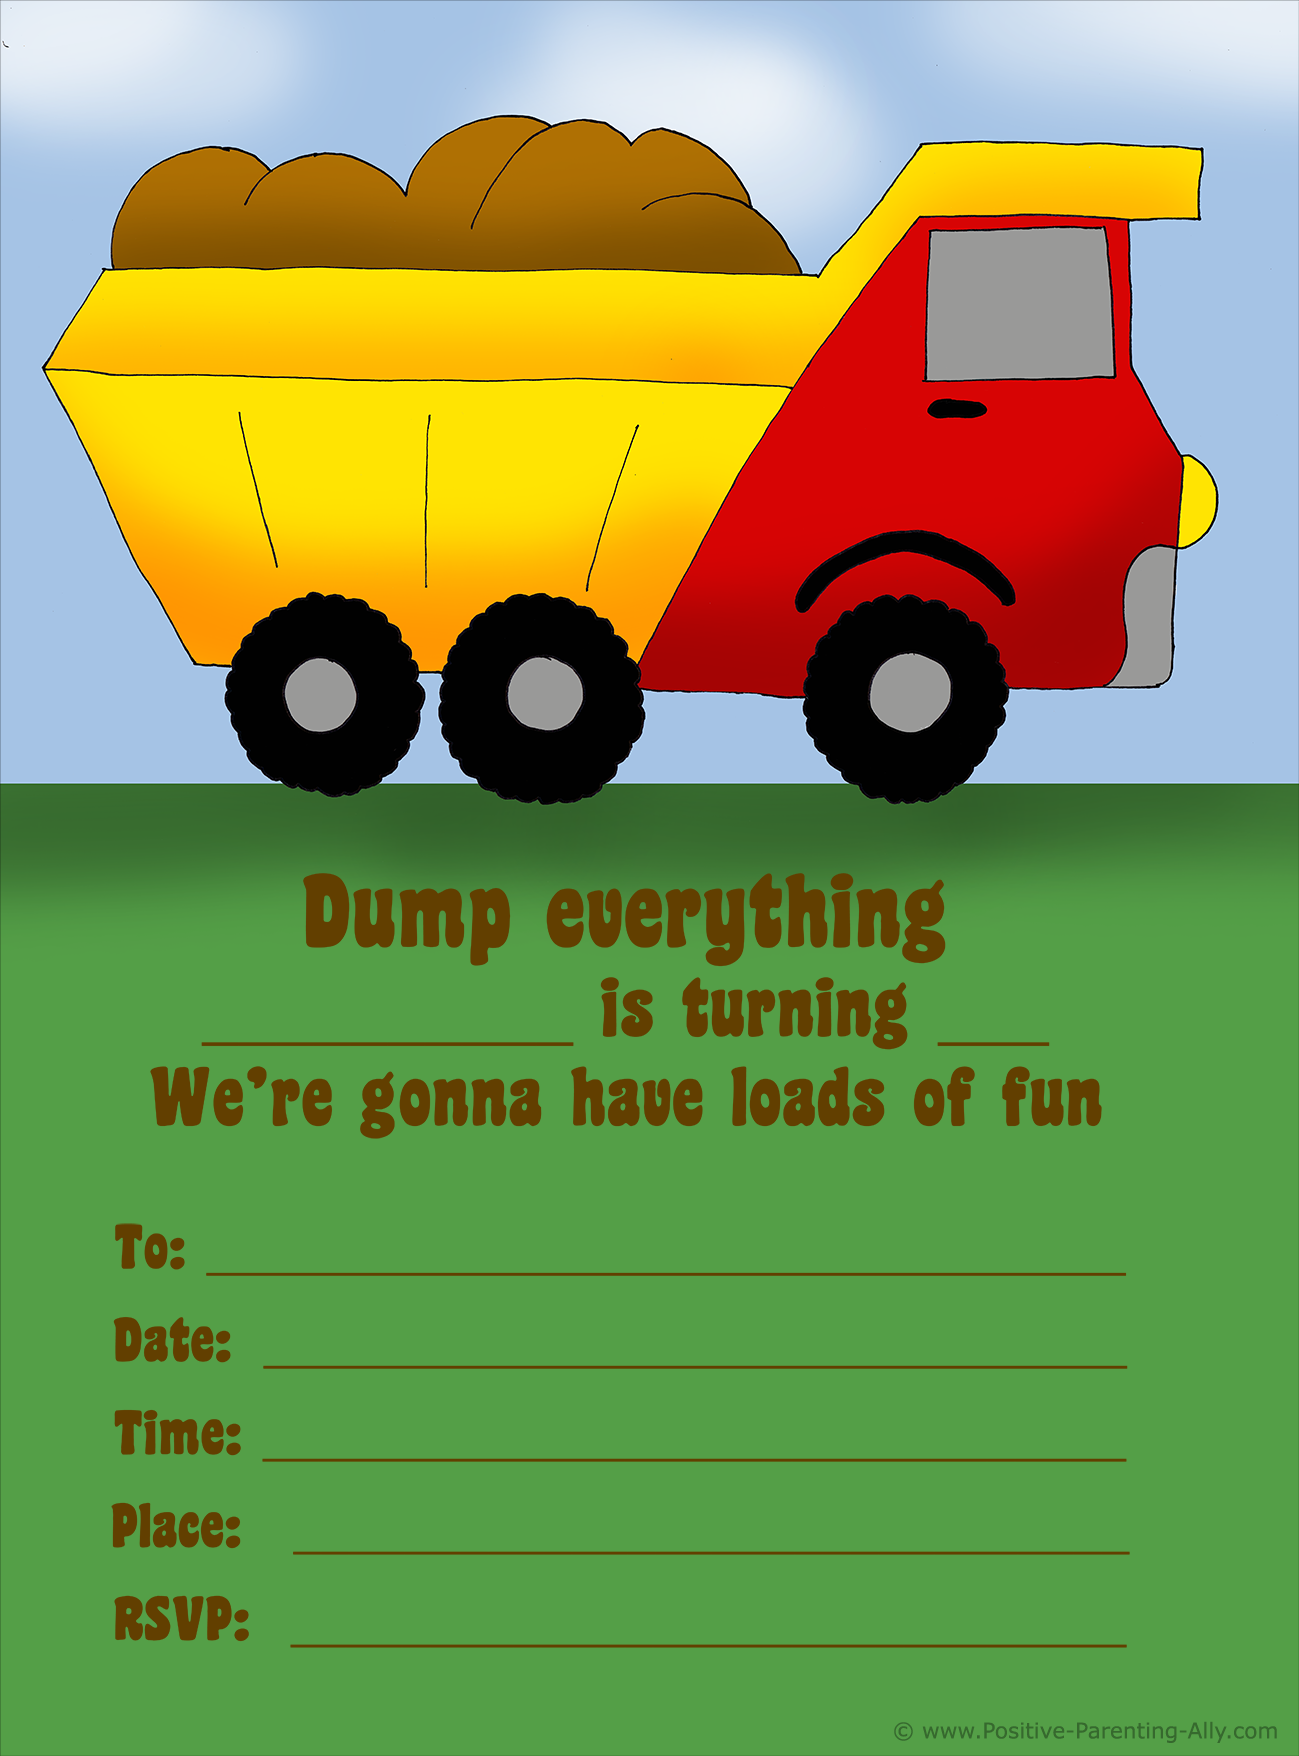 image regarding Monster Truck Birthday Invitations Free Printable referred to as Absolutely free Birthday Invites in the direction of Print for Young children: Determine Your Concept